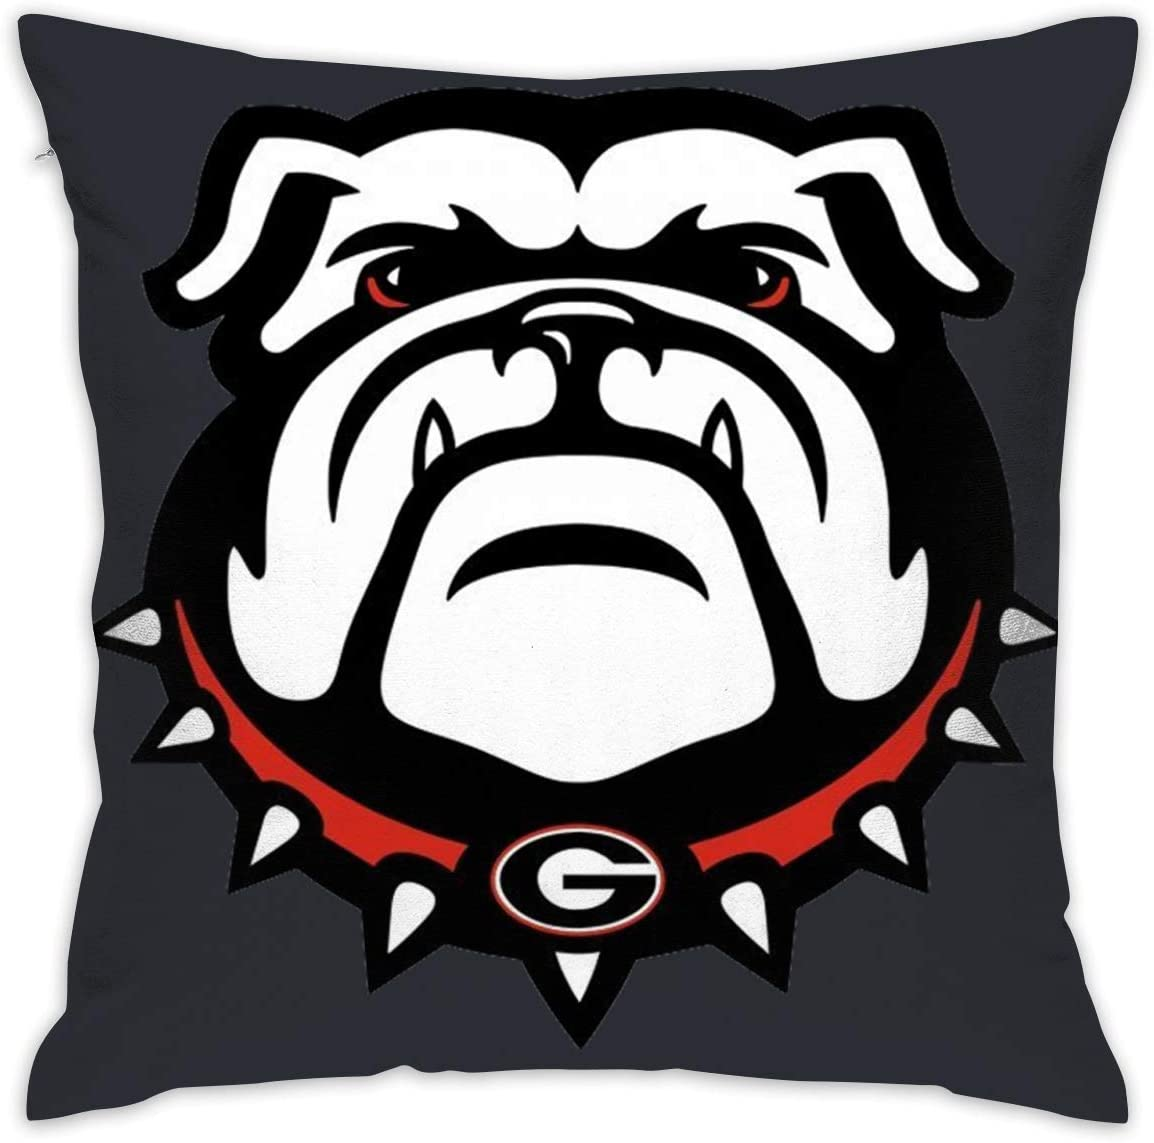 Georgia Bulldogs White Unisex Pillow Case Soft for Sofa Bed Car Throw Pillow Covers 18x18 Inch